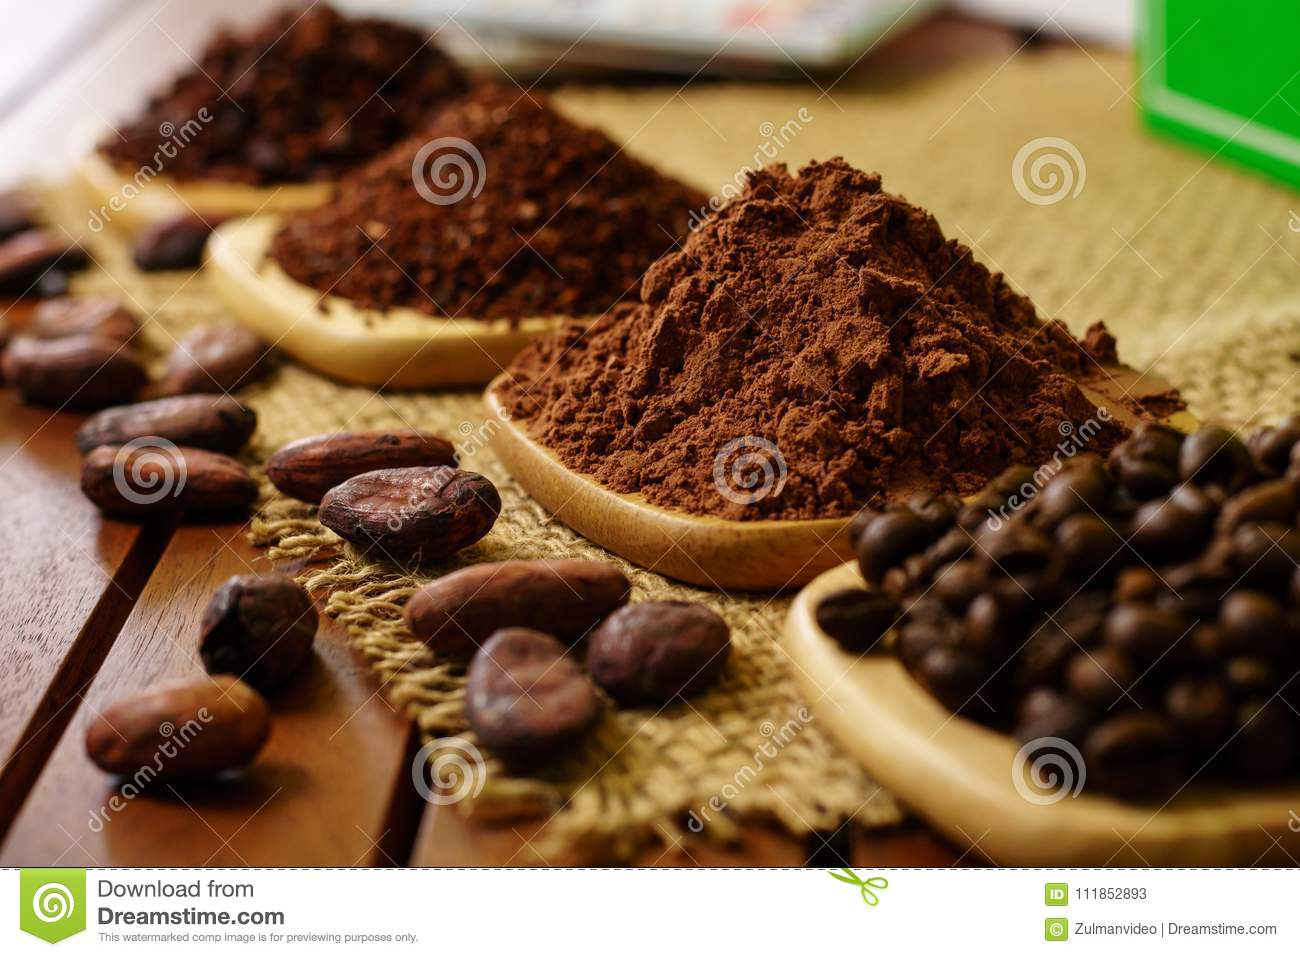 Cacao powder, cocoa nibs, and coffee beans on wooden plates on burlap